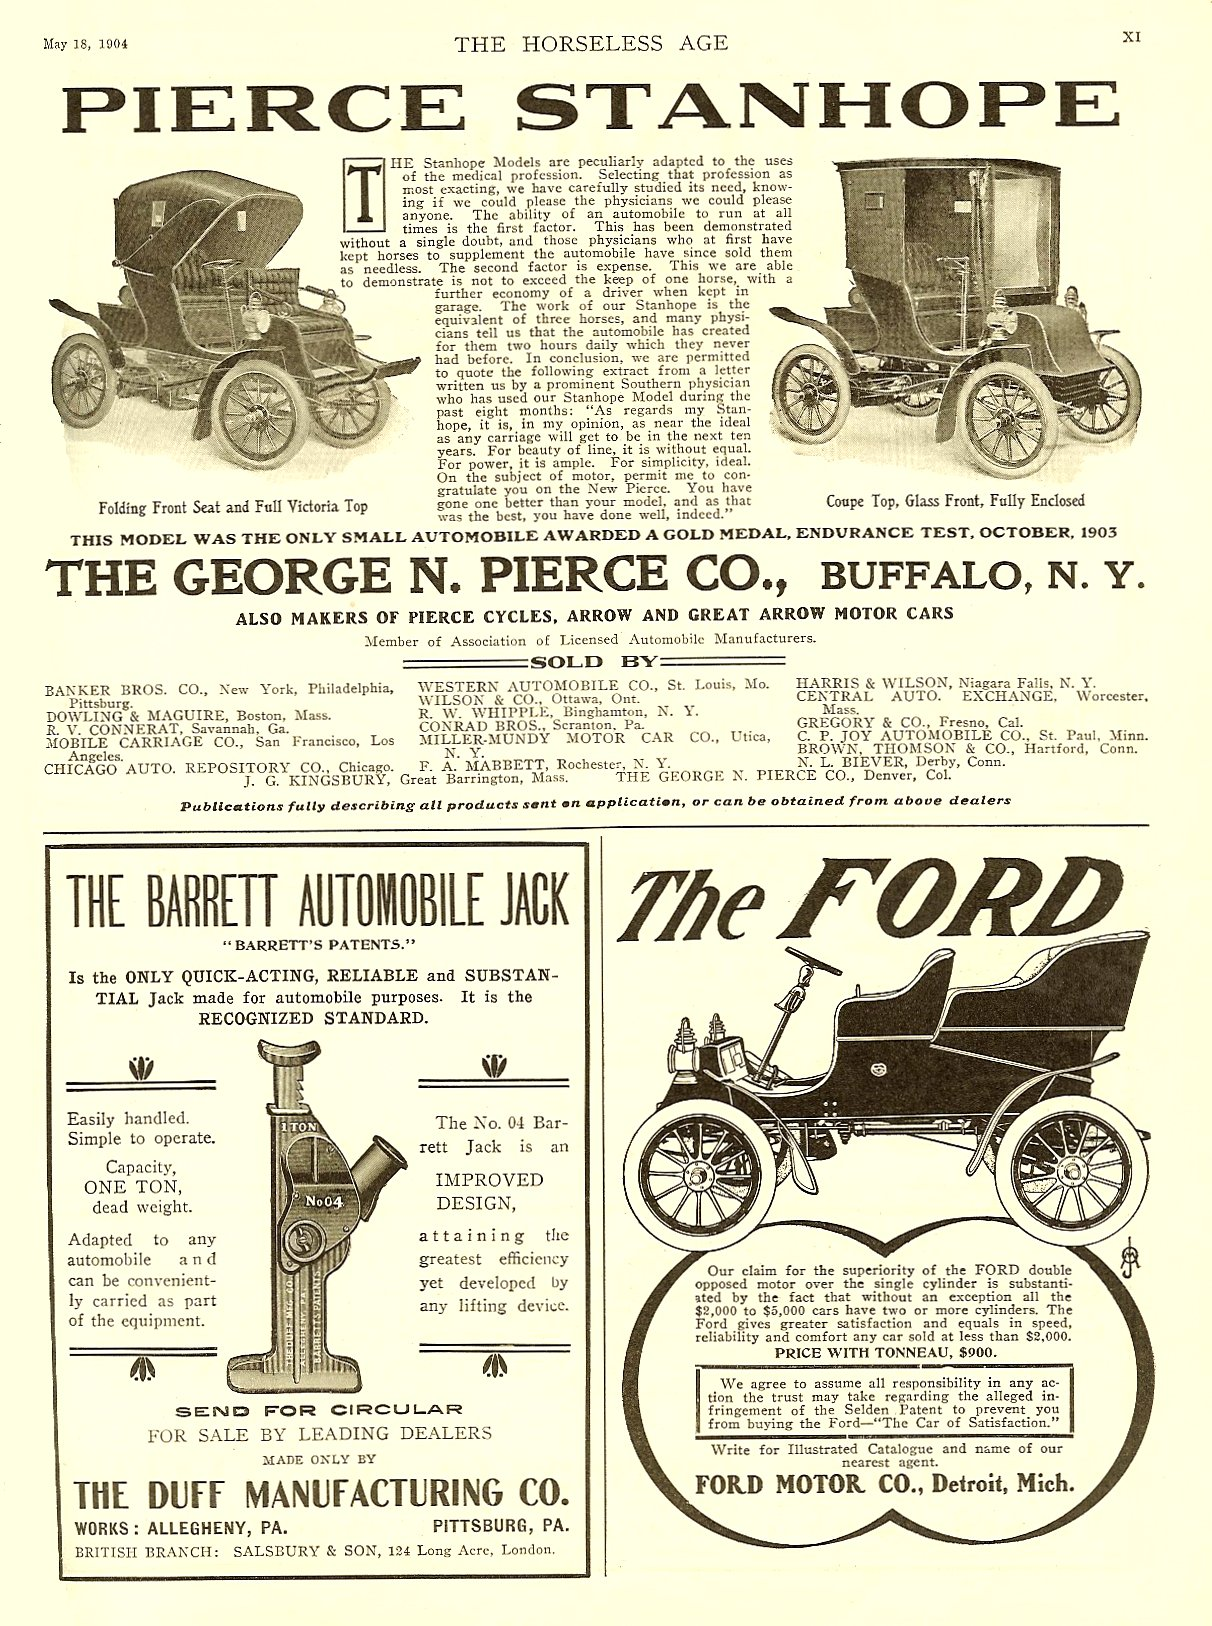 1904 5 18 The FORD THE HORSELESS AGE May 18, 1904 Vol. 13 No. 20 9″x12″ page XI